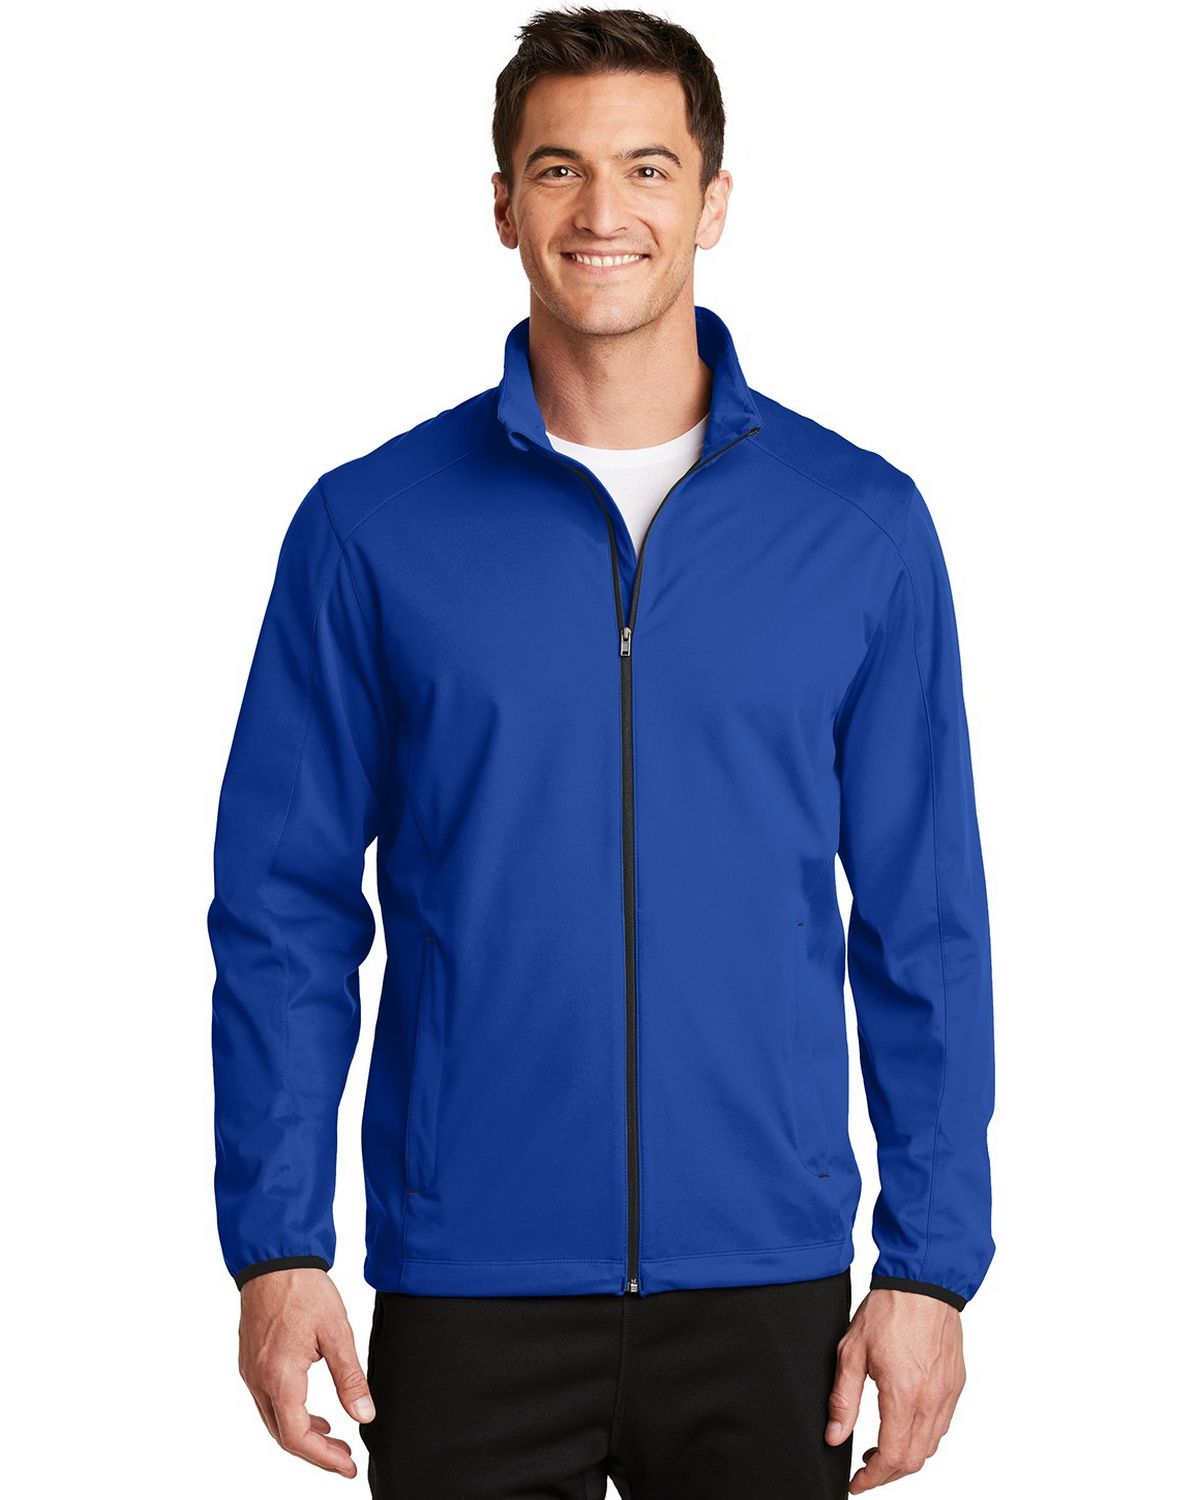 Port Authority J717 Active Soft Shell Jacket